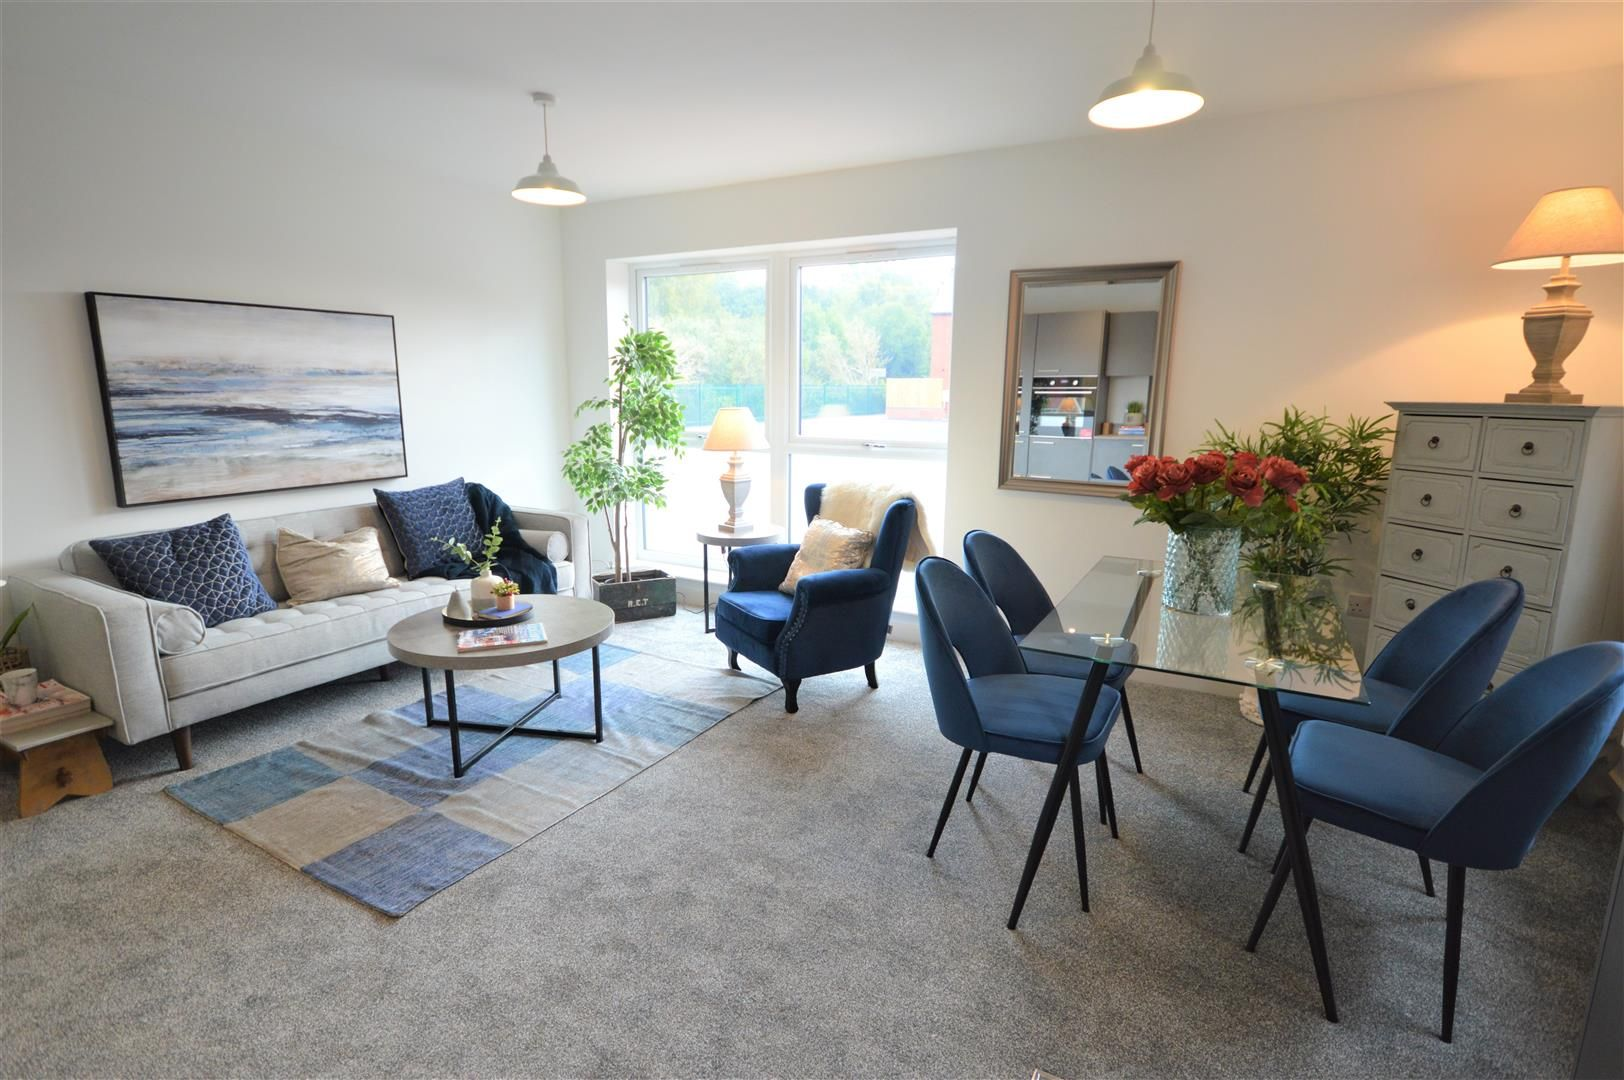 2 bed house for sale in Leominster 9